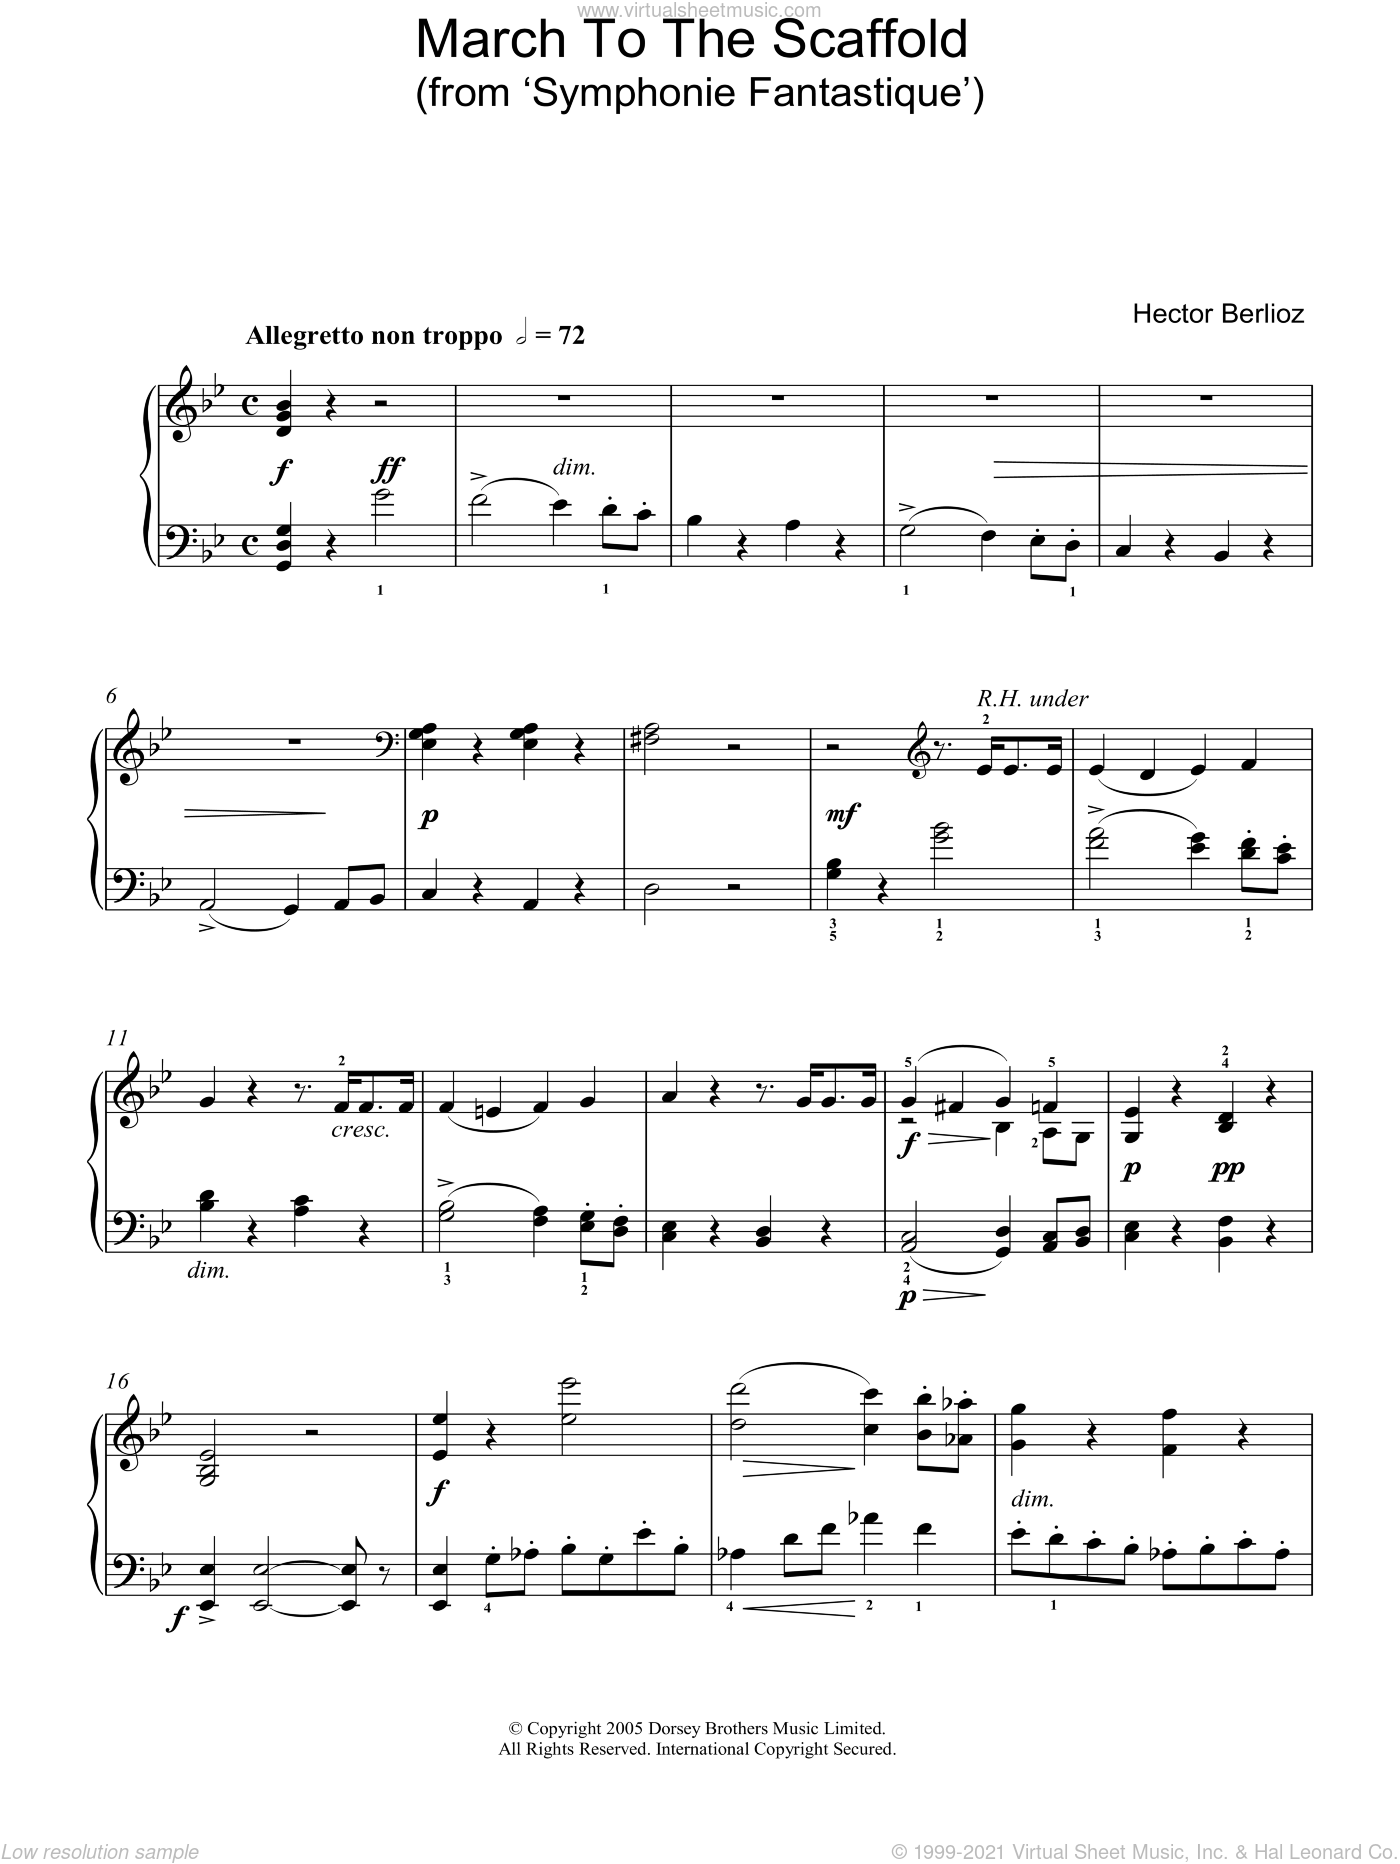 March To The Scaffold (from Symphonie Fantastique) sheet music for piano solo by Hector Berlioz. Score Image Preview.